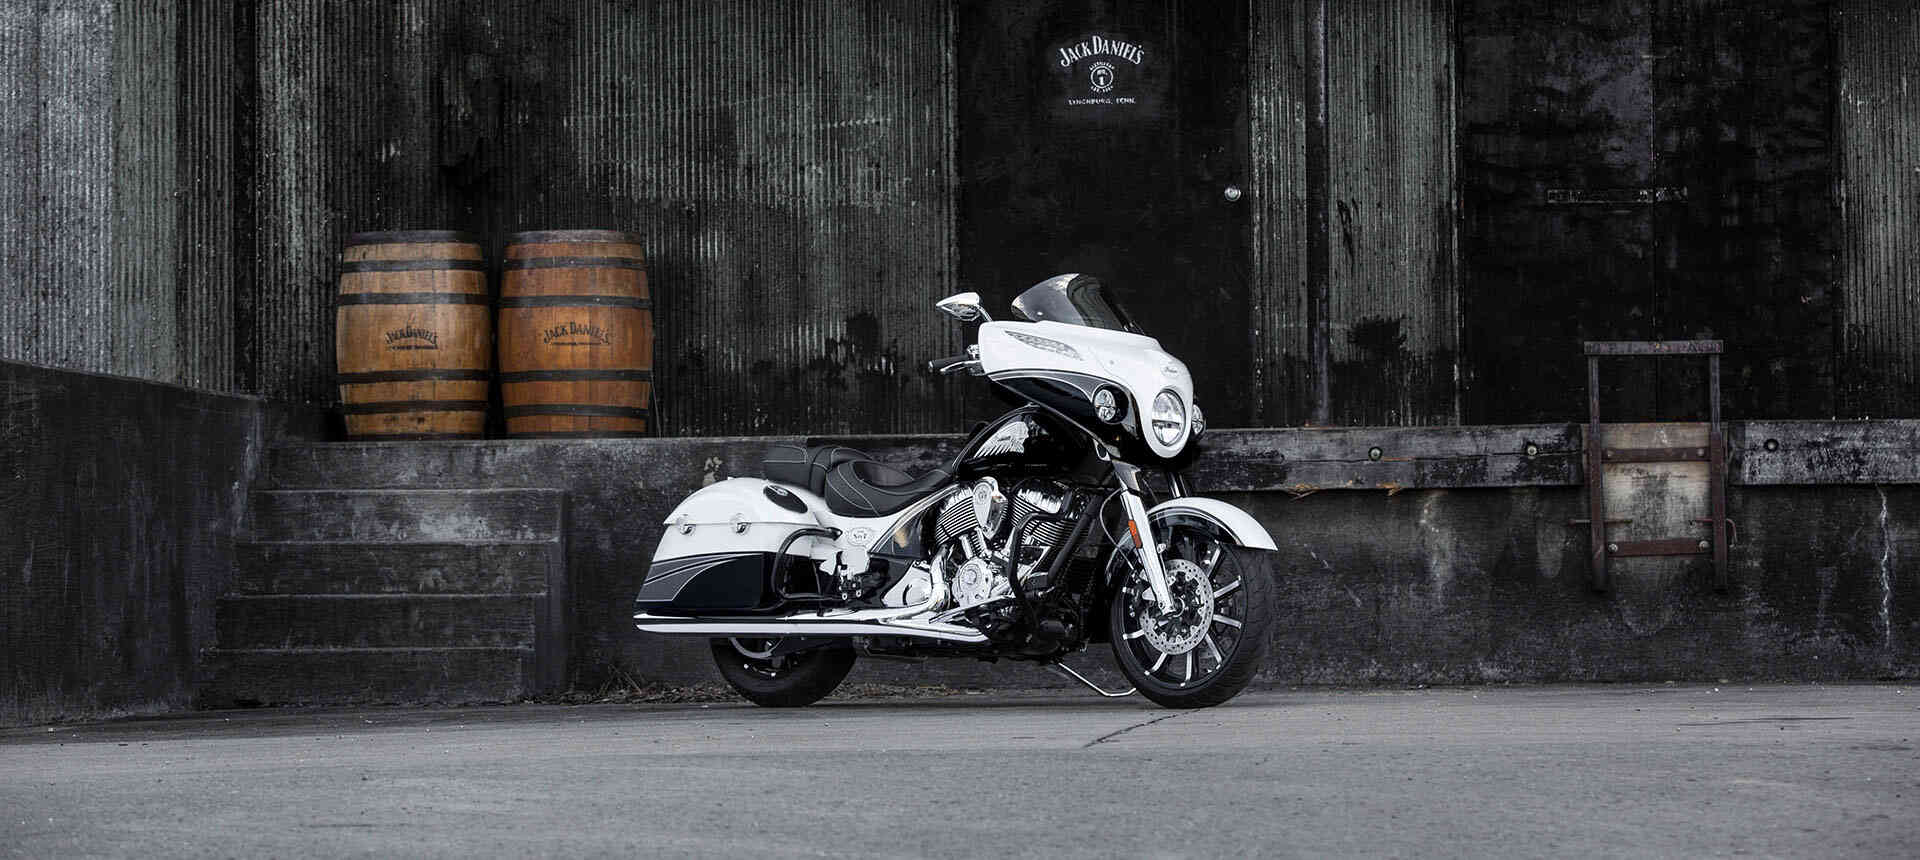 2017 Jack Daniel's Limited Edition Indian Chieftain